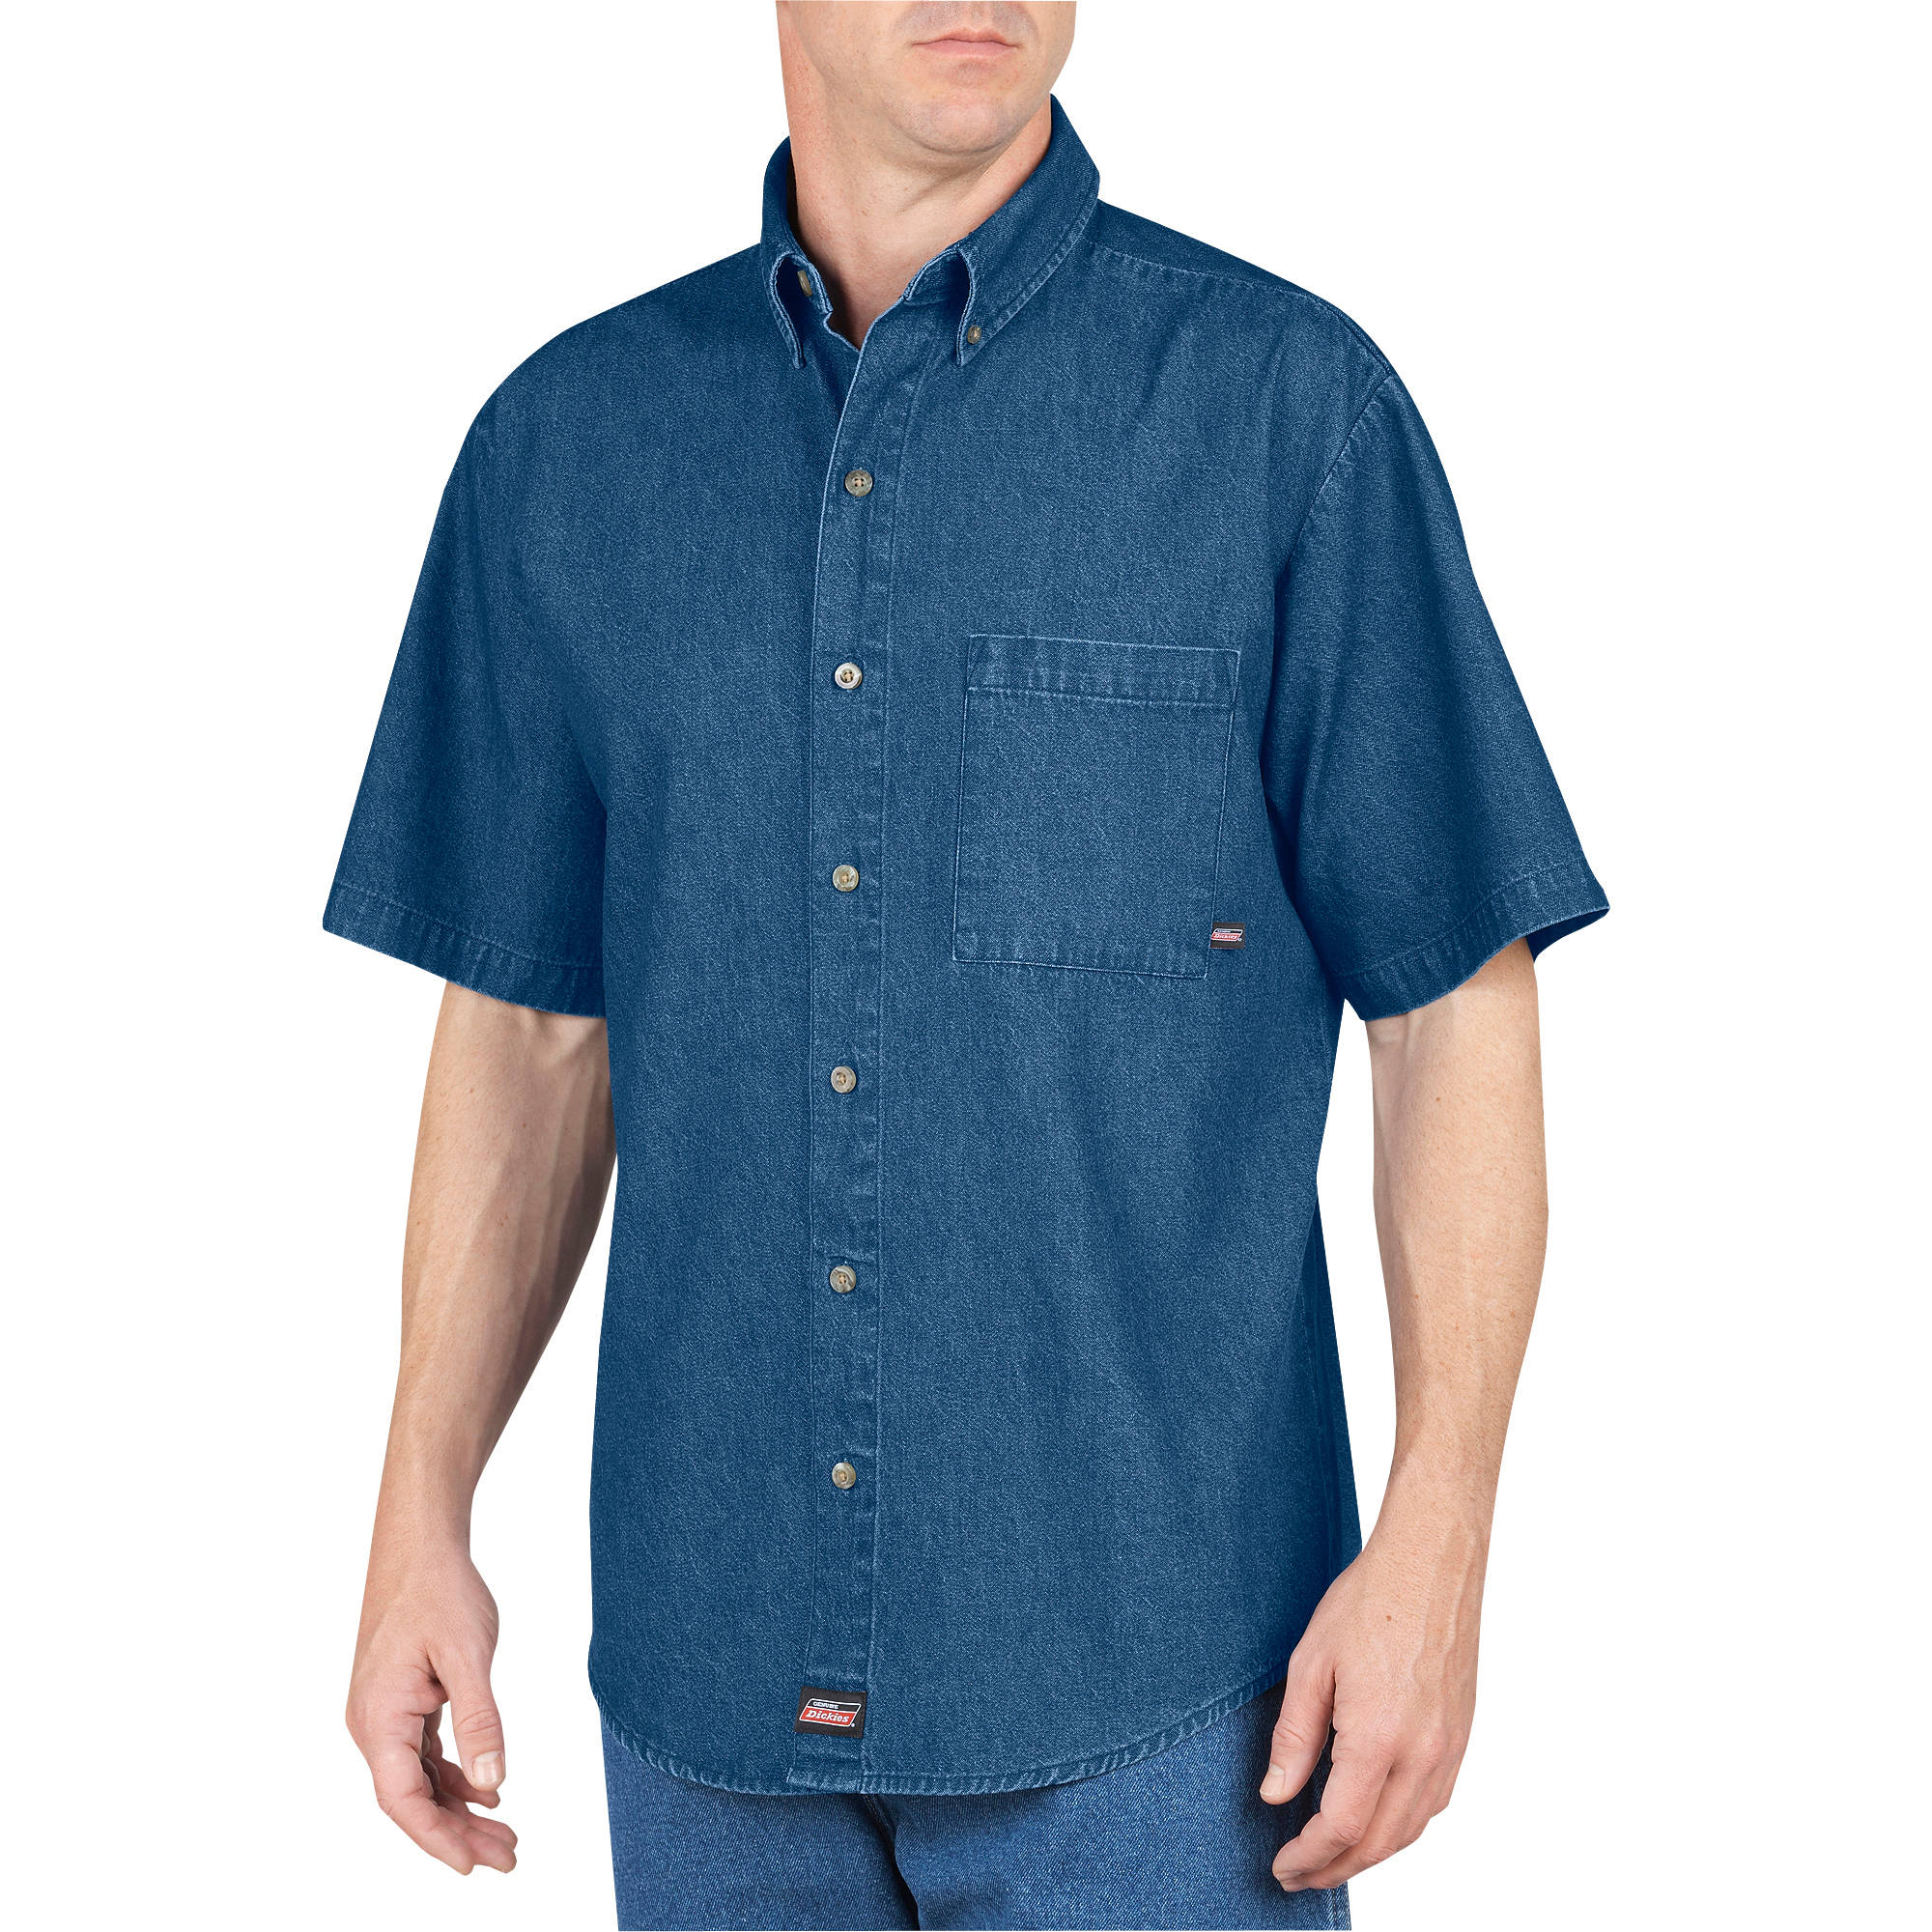 Big Men's Short Sleeve Denim Shirt